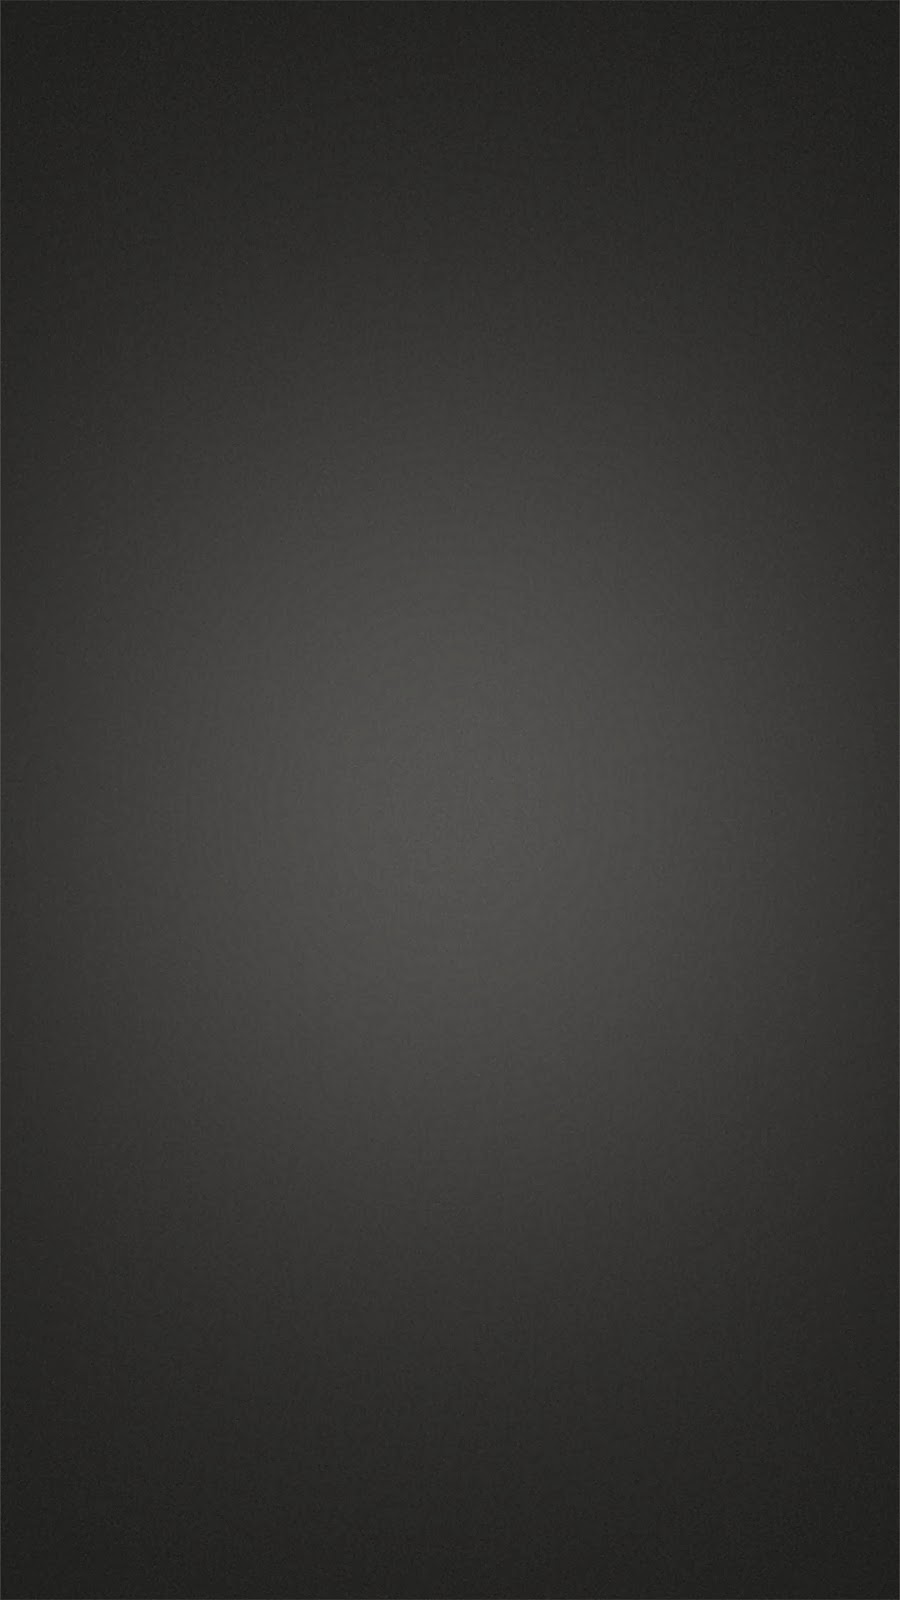 Android Phone Black Wallpapers | Wallpaper Albums